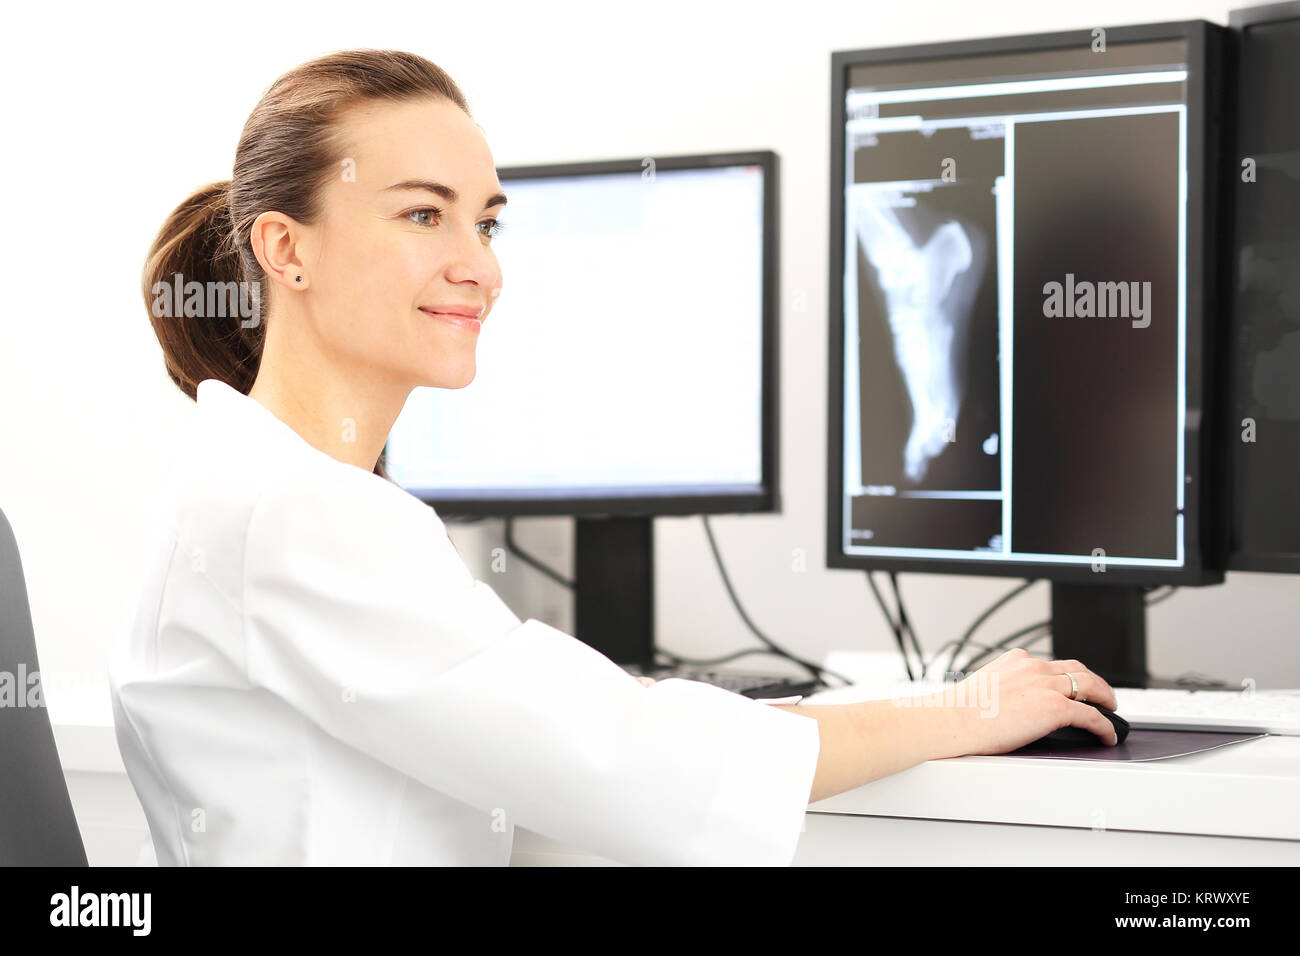 a doctor is sitting at a desk in a doctor's office and examining the medical records. - Stock Image